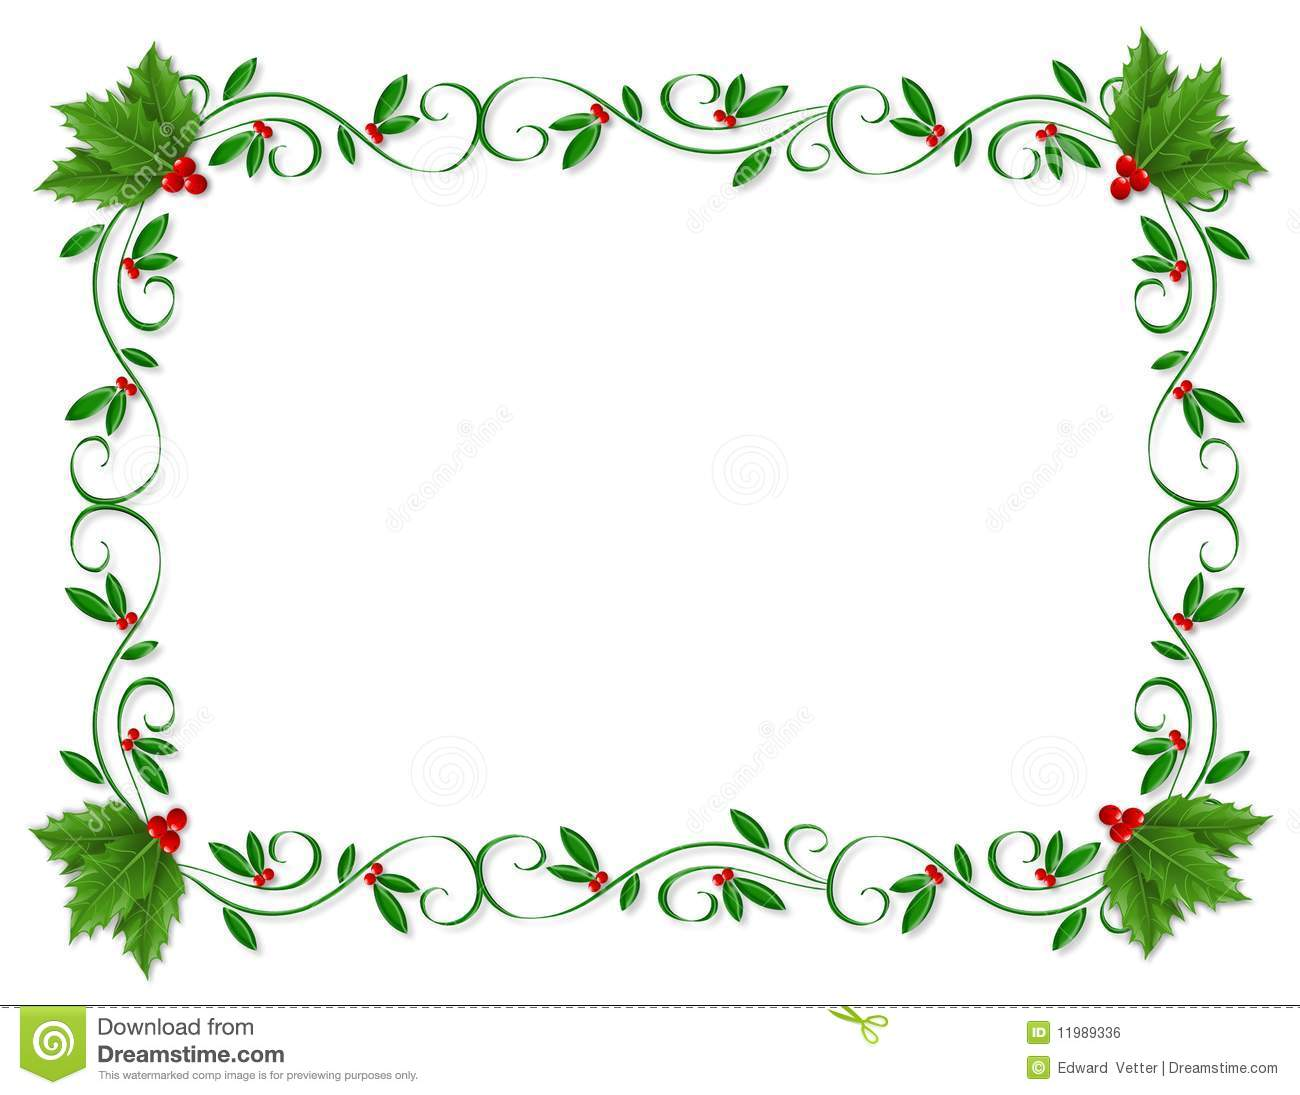 christmas design element for greeting card border holiday invitation frame or ornamental border with decorative holly with copy space